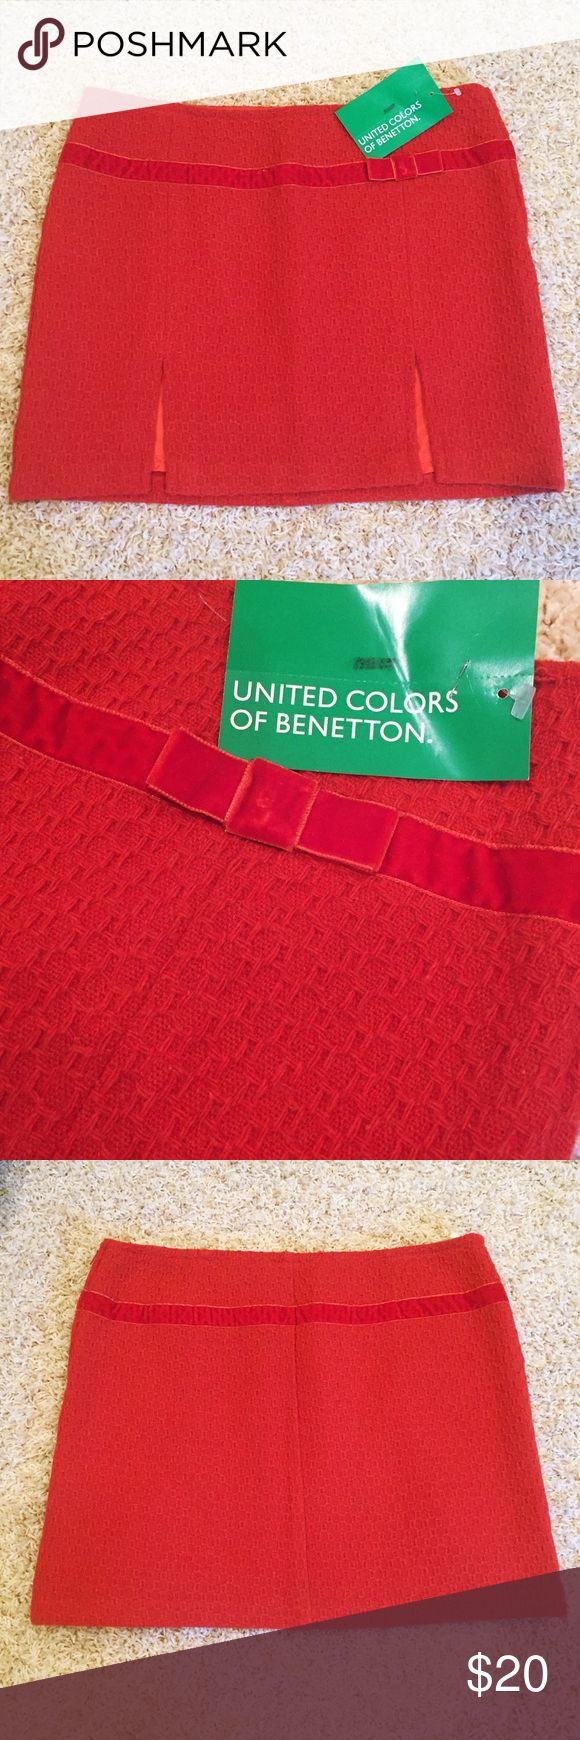 "NWT Orange Skirt Orange skirt with velvet bow, 14.5"" long, fully lined. No stains, pulls, or flaws! European size 45, US size 8. United Colors Of Benetton Skirts Mini"